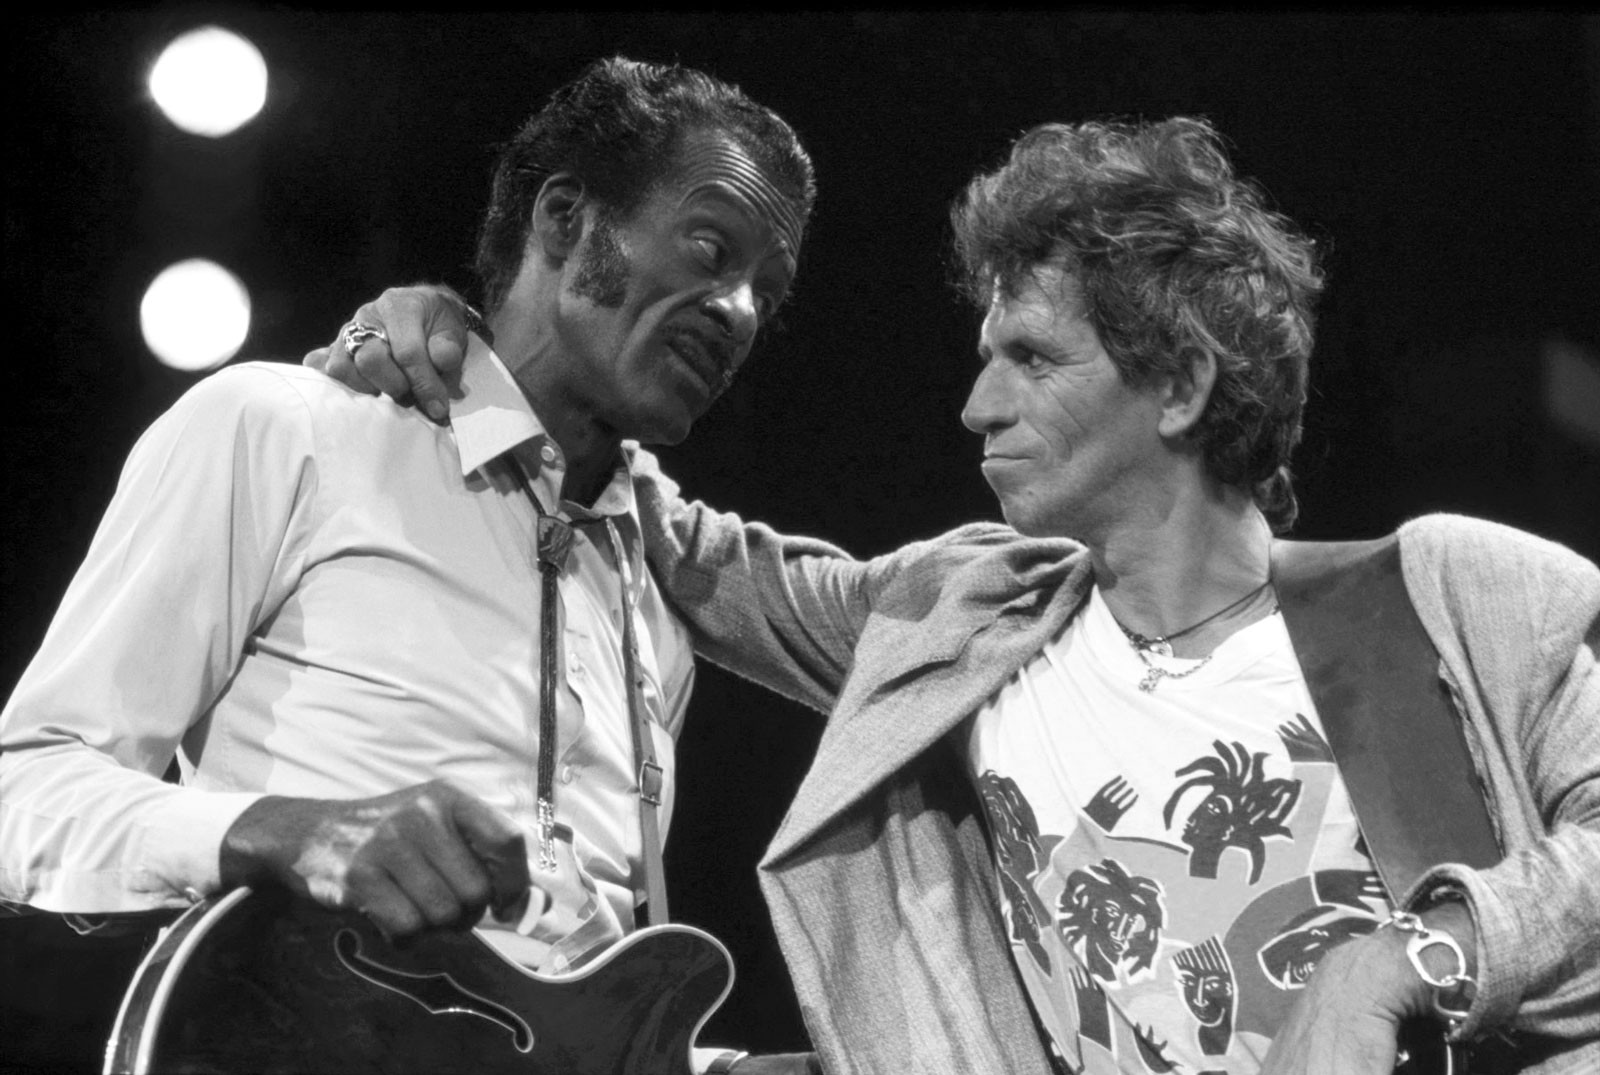 Chuck Berry & Keith Richards